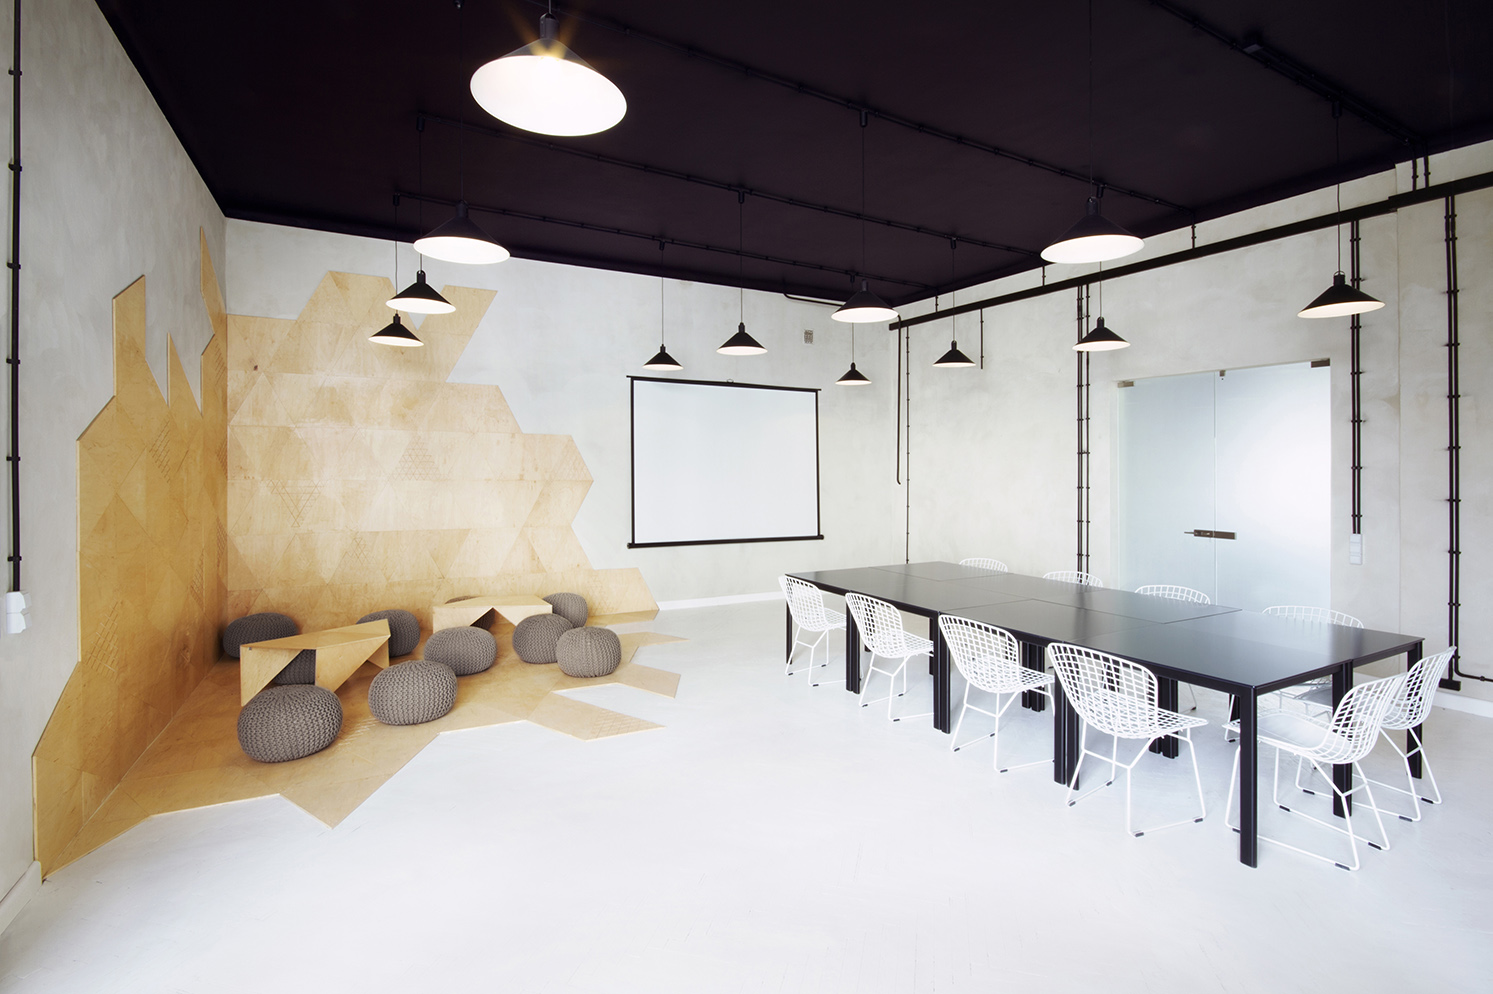 4 informal meeting room unique open plan living and dining room design ideas roohome on meeting - Conference Room Design Ideas